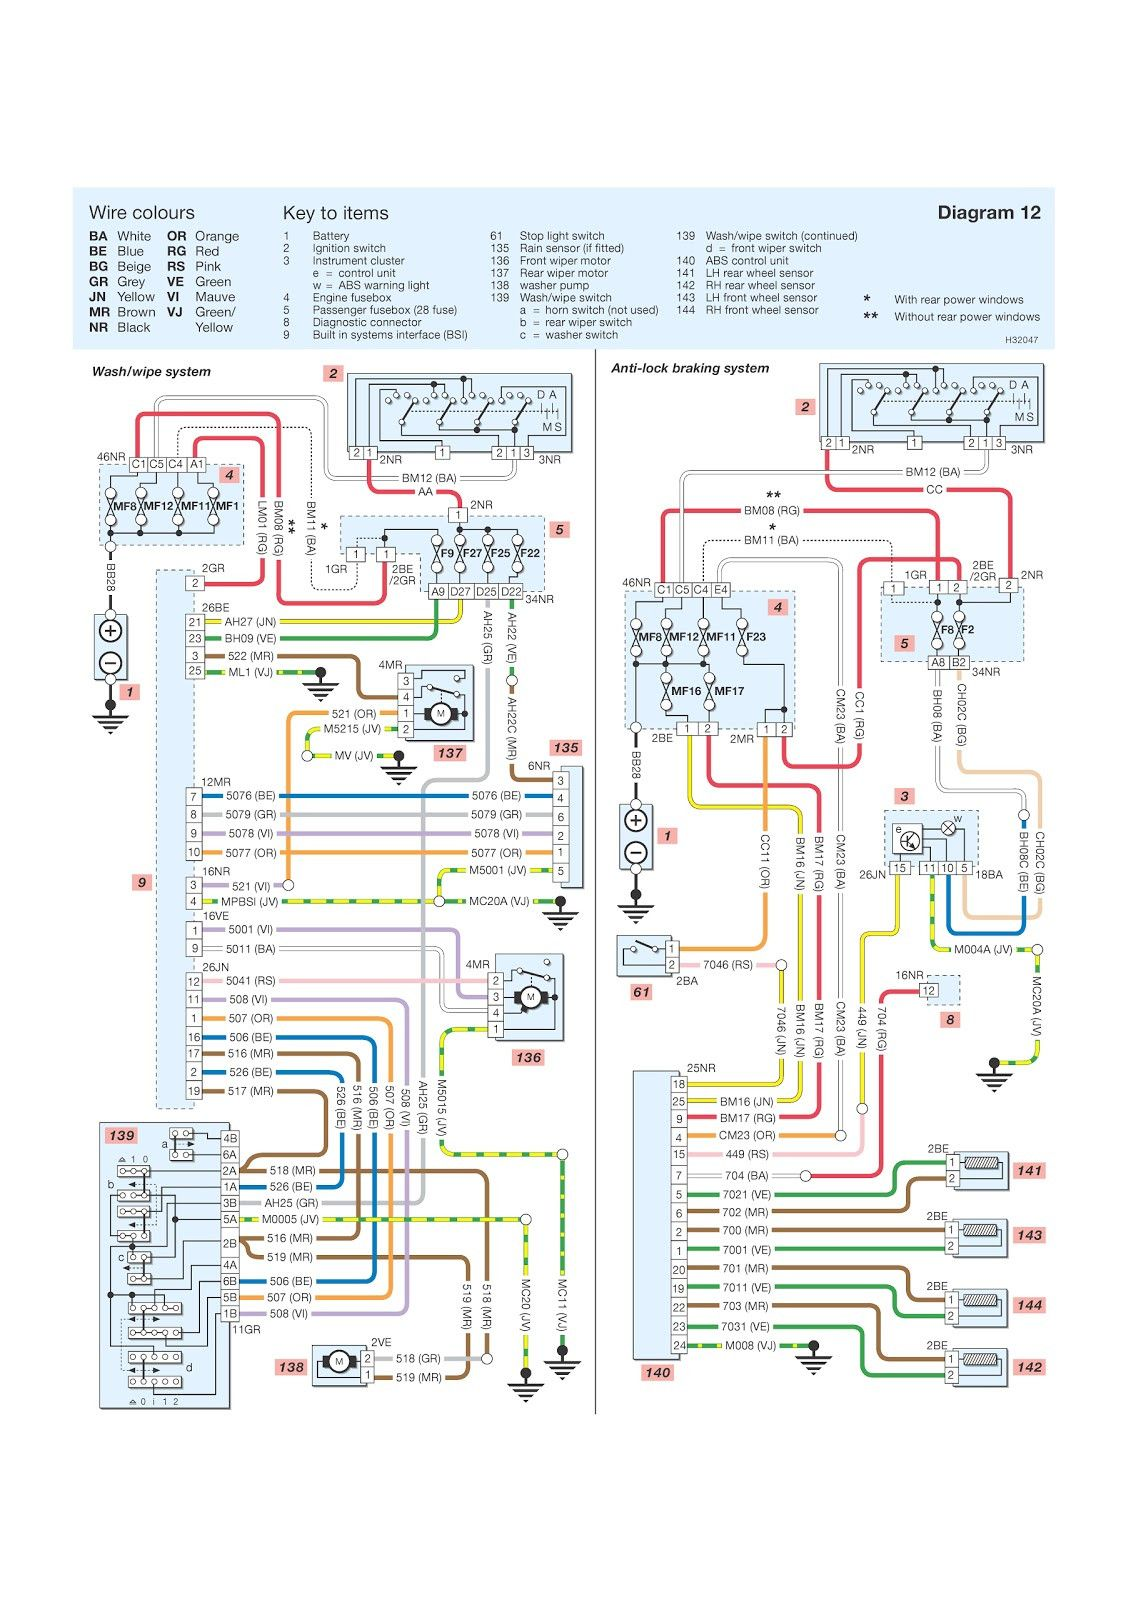 peugeot 607 wiring diagram schematic diagram peugeot 607 electrical wiring diagram peugeot 607 wiring diagram [ 1131 x 1600 Pixel ]